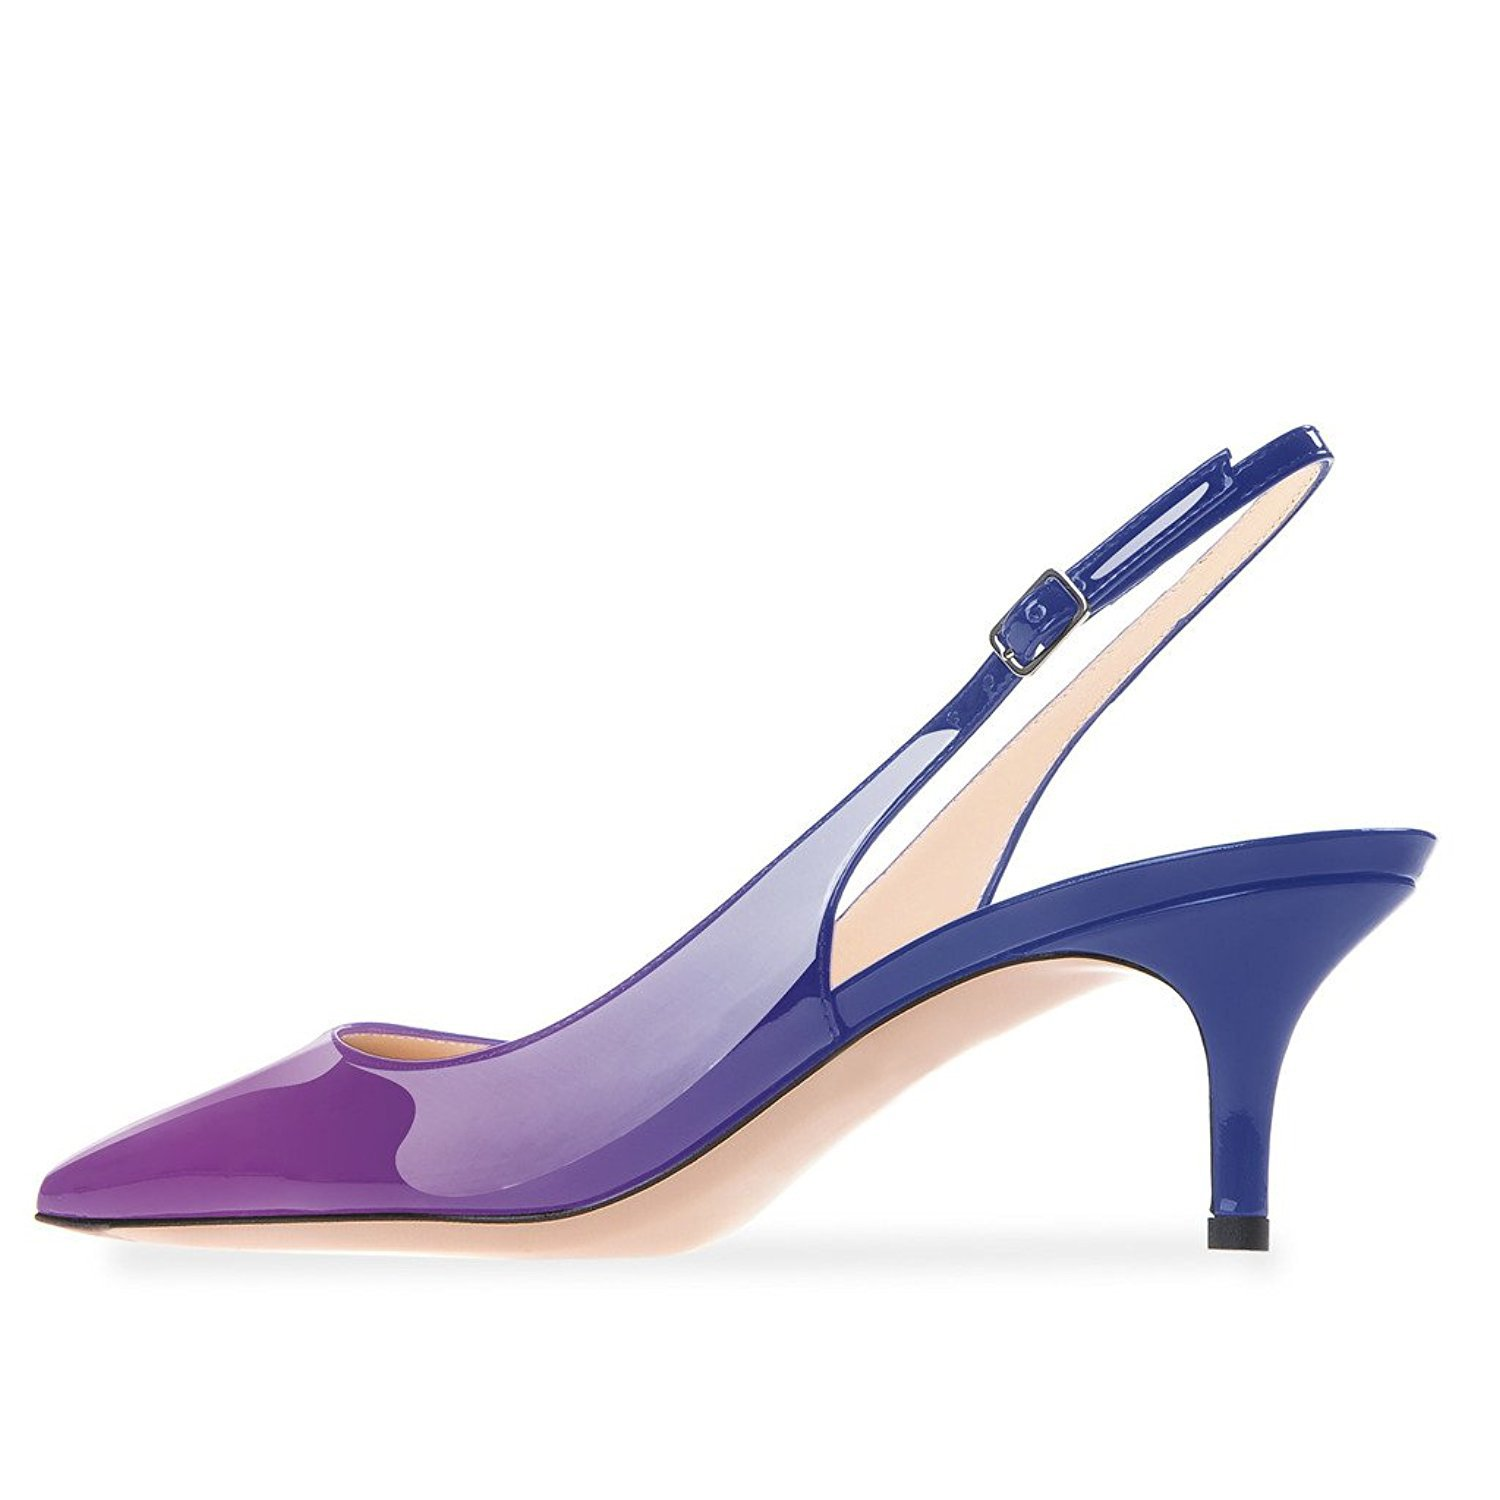 Lovirs Womens Slingback Ankle Strap Sandals Stiletto Mid-Heel Pointy Toe Pumps Shoes for Party Dress B078TF341Q 5 B(M) US|Purple-blue